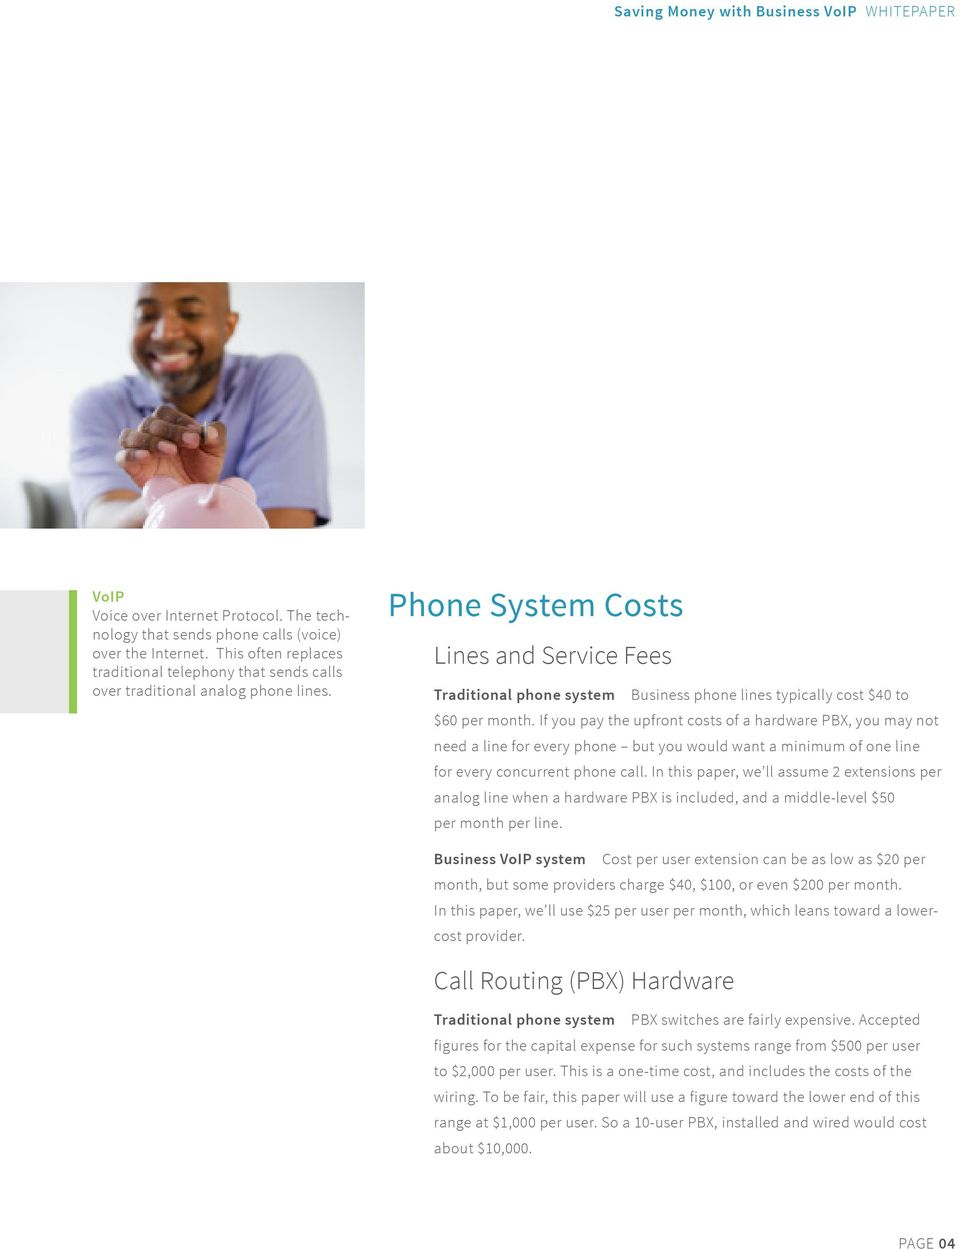 If you pay the upfront costs of a hardware PBX, you may not need a line for every phone but you would want a minimum of one line for every concurrent phone call.